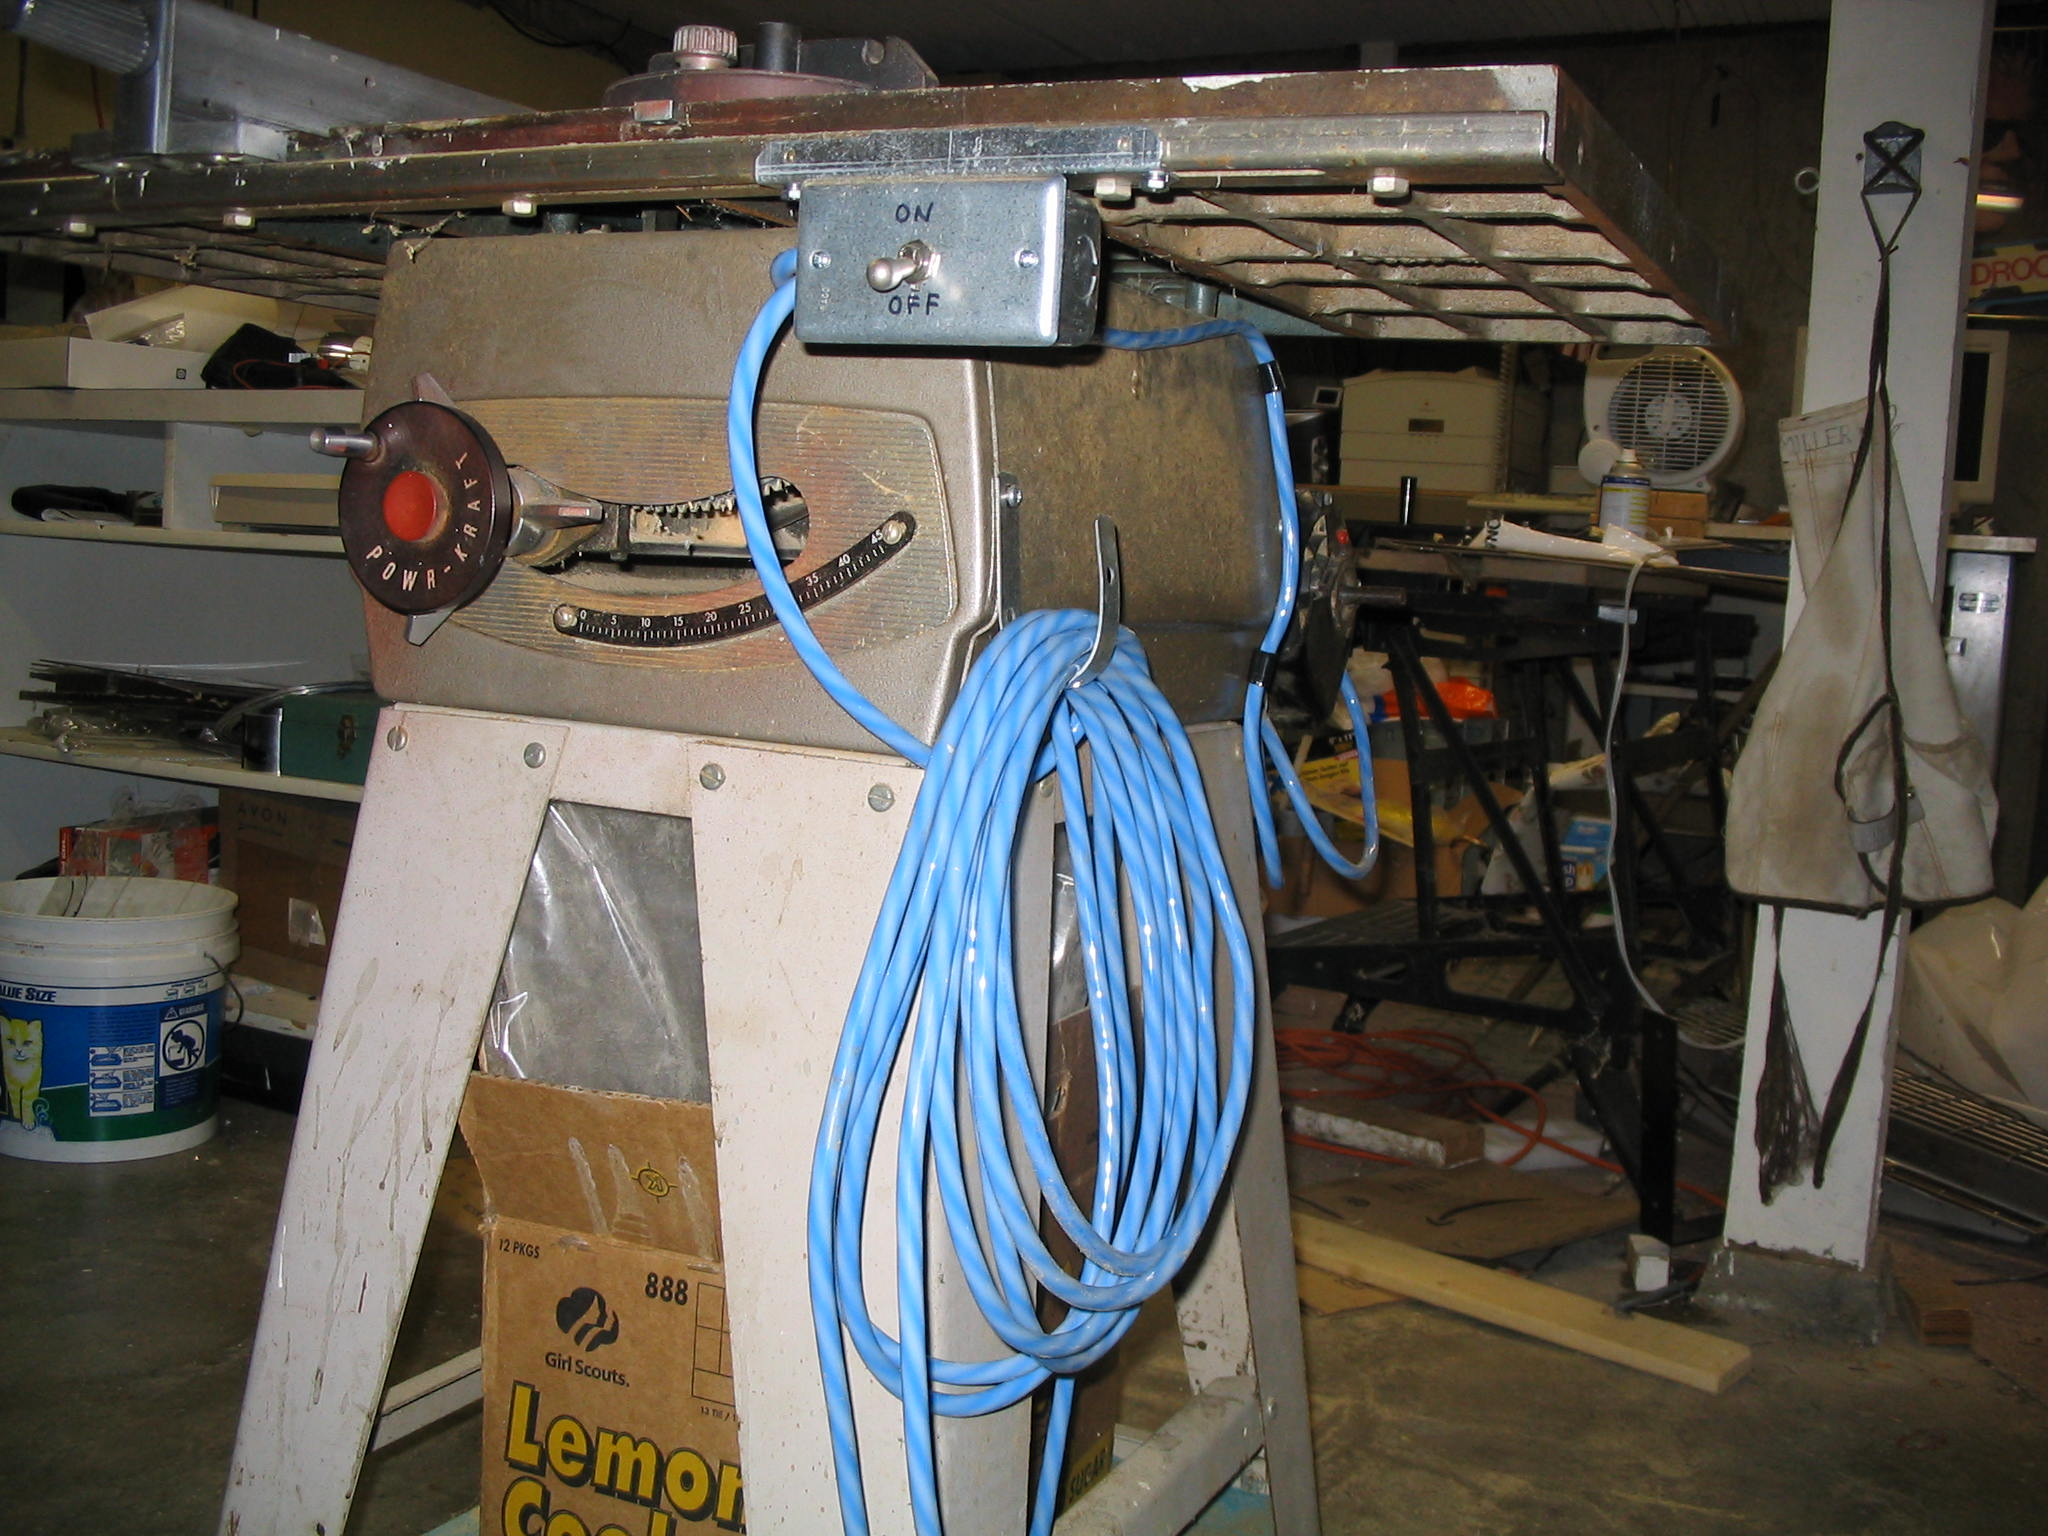 Tablesaw wiring repair bolis new switch and wiring keyboard keysfo Image collections